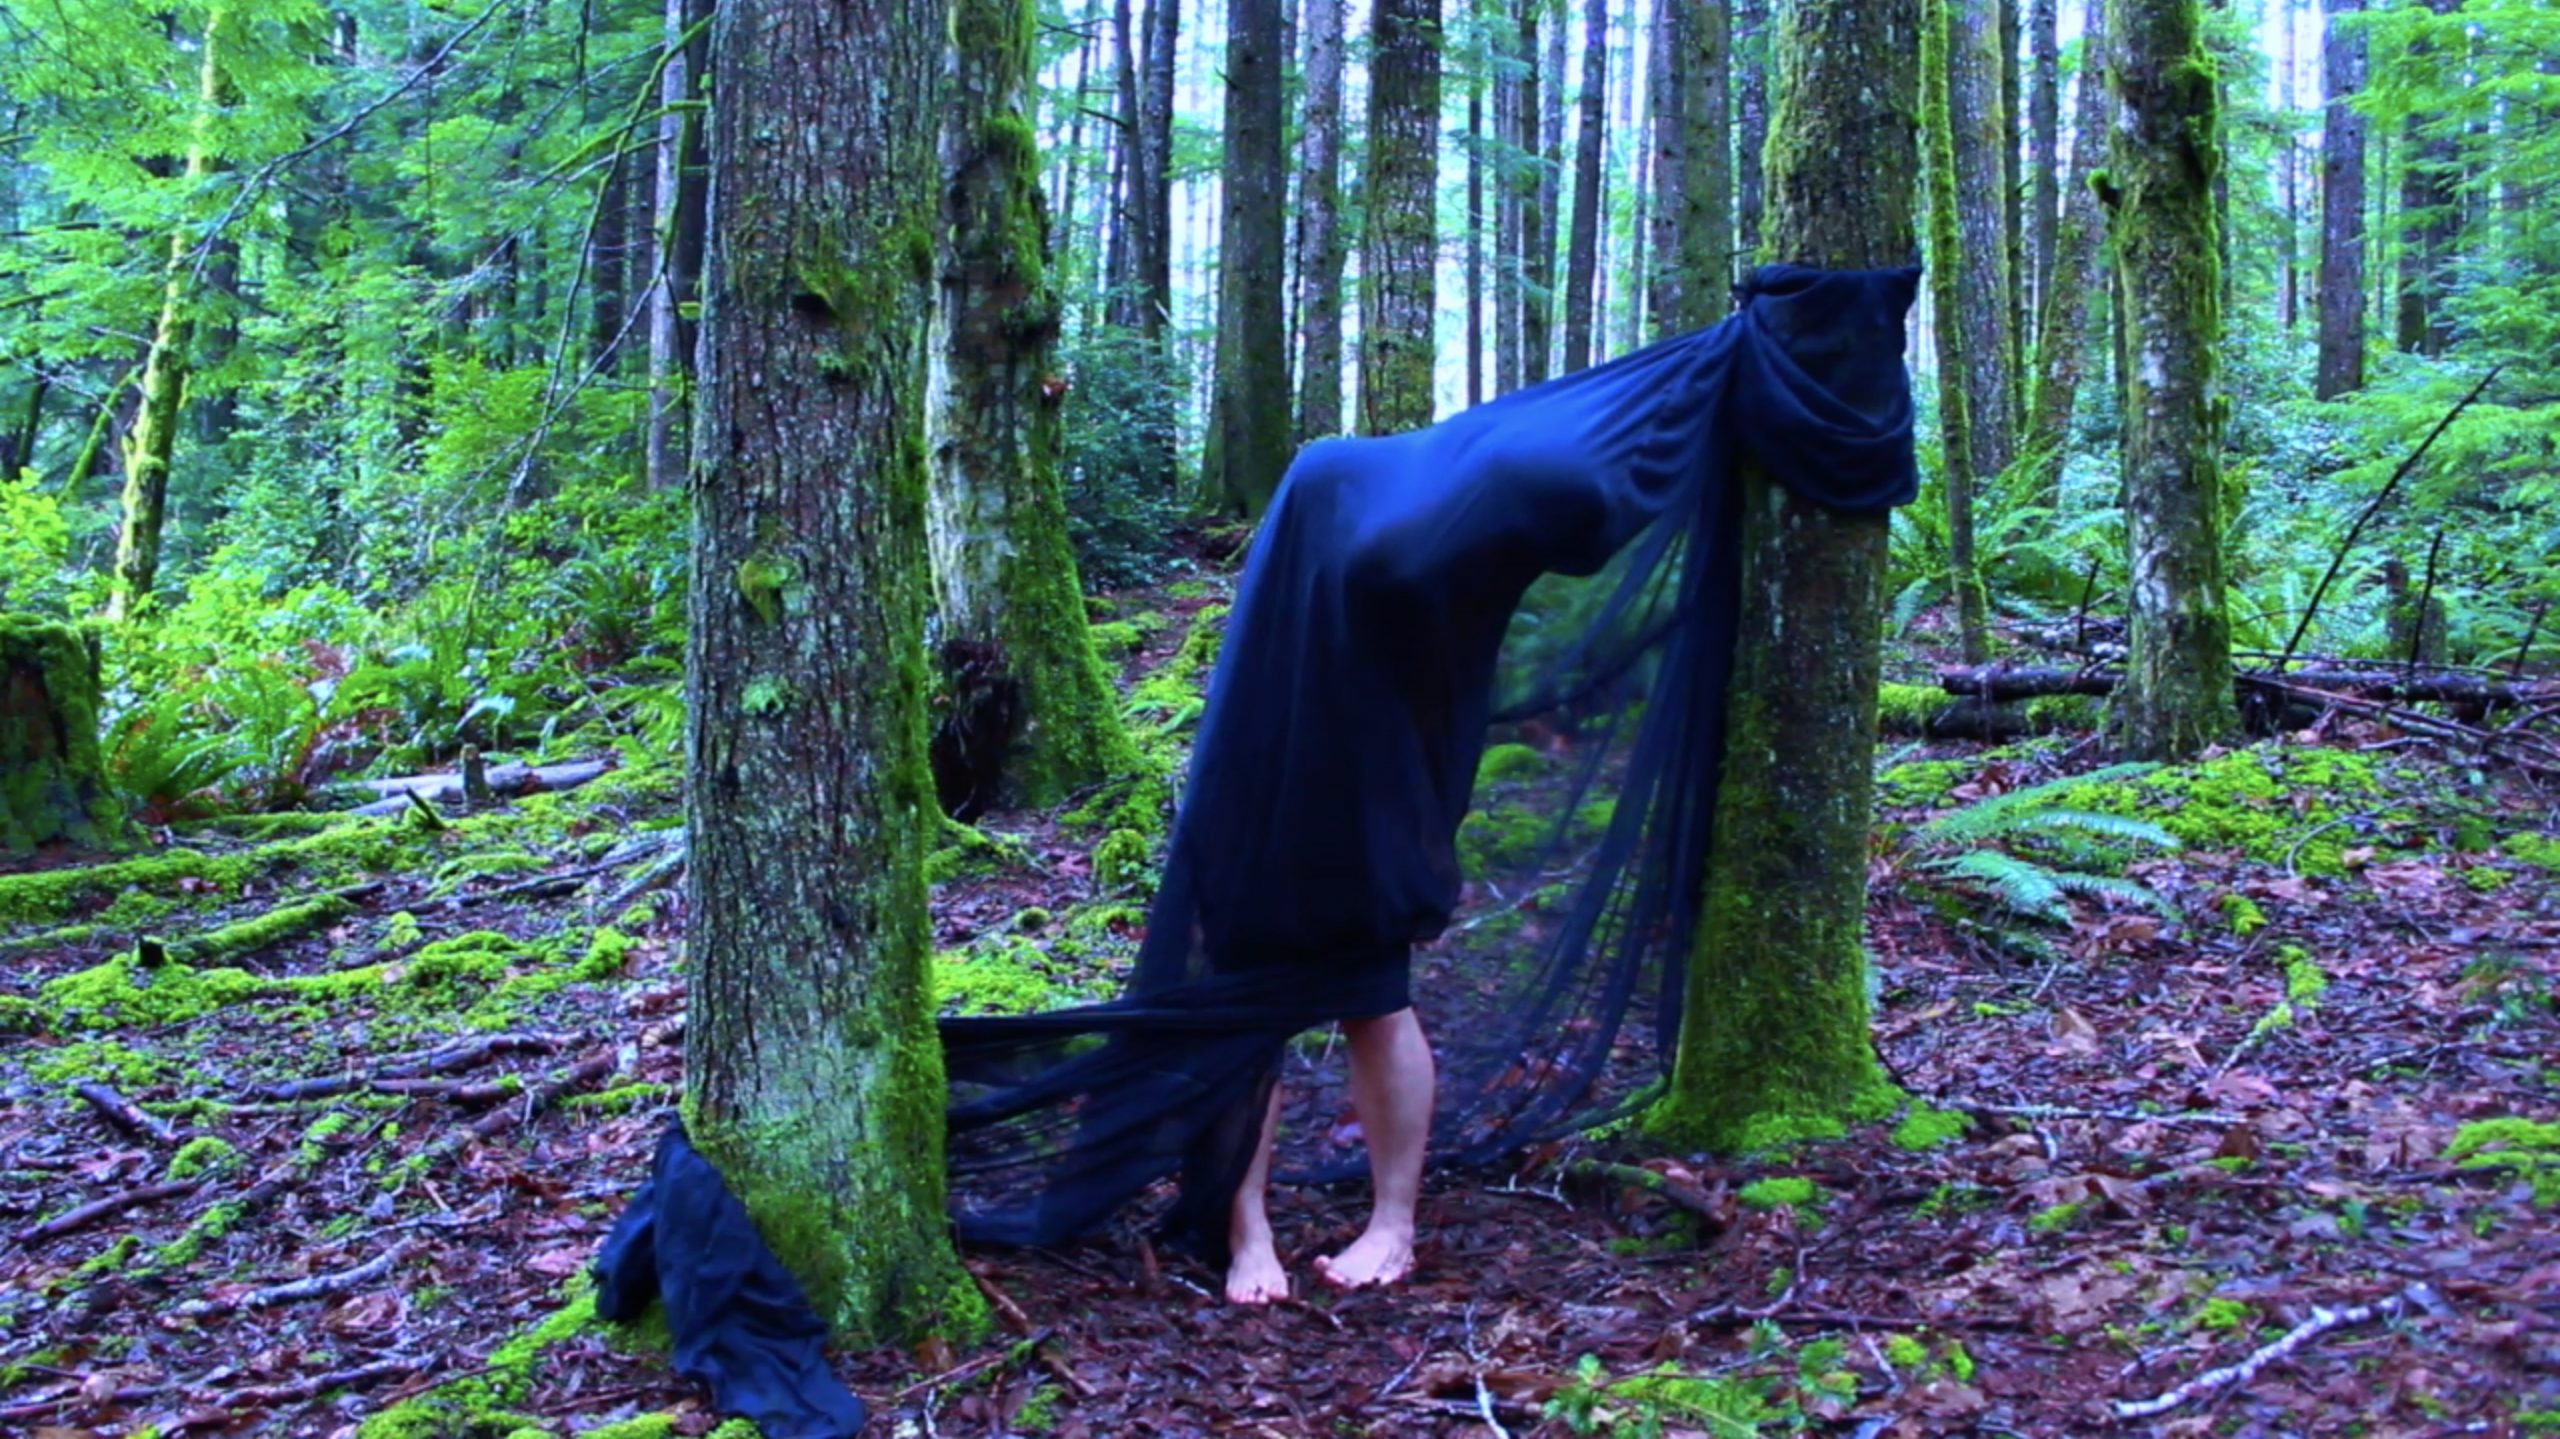 video still of figure wrapped in dark cloth standing between two trees in a forest